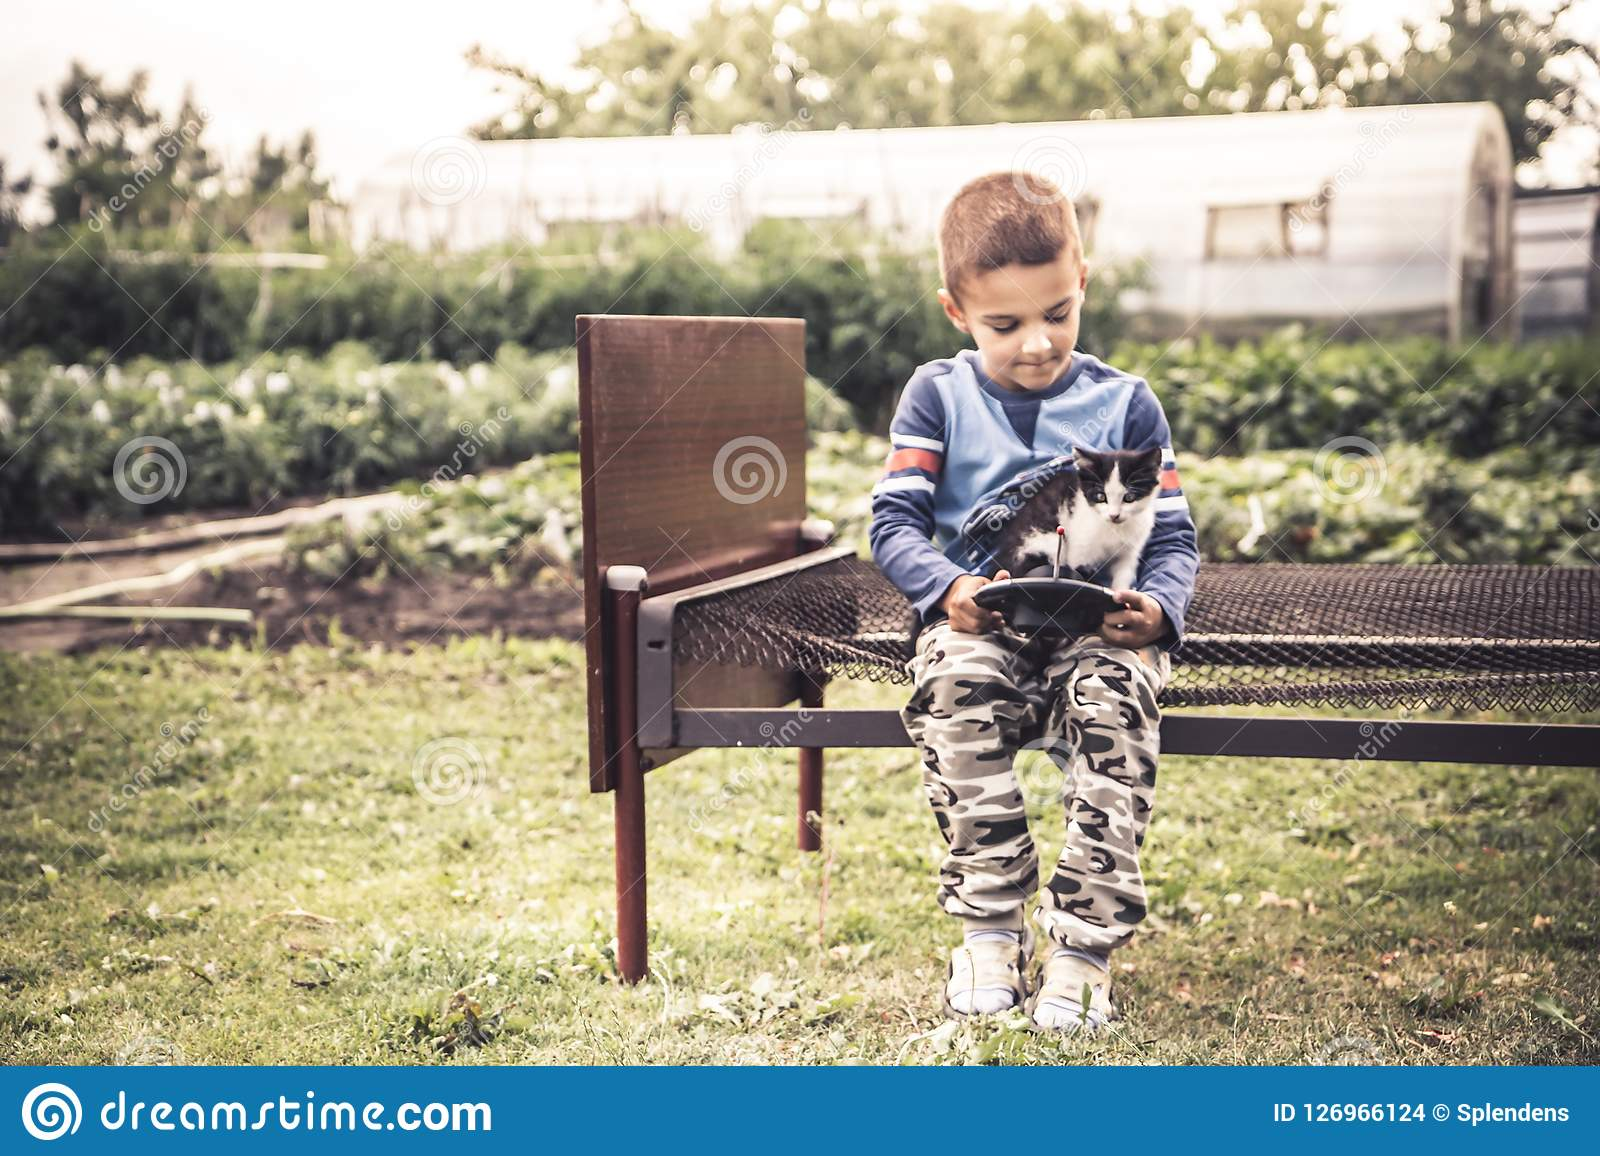 Lonely child kid boy playing kitten countryside lifestyle concept loneliness and pets care friendship